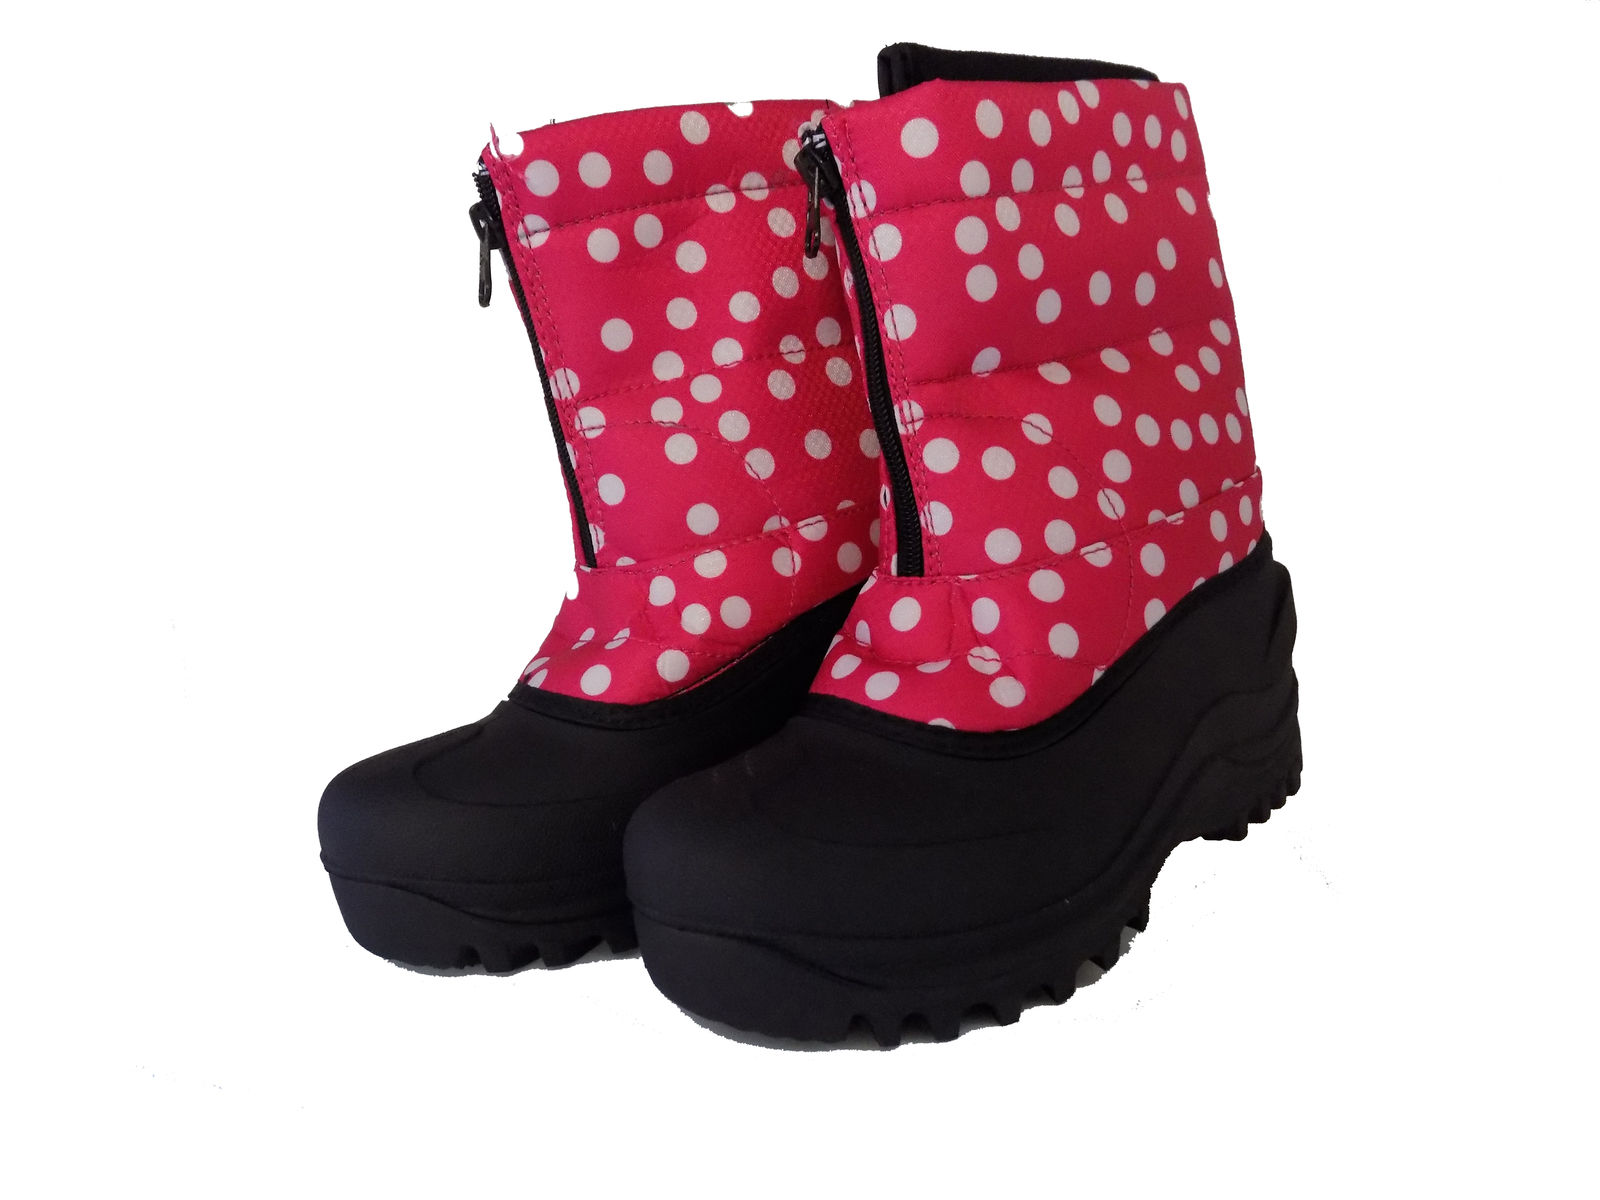 Itasca POLKA DOT Girls Warm Winter Snow Boots by Itasca